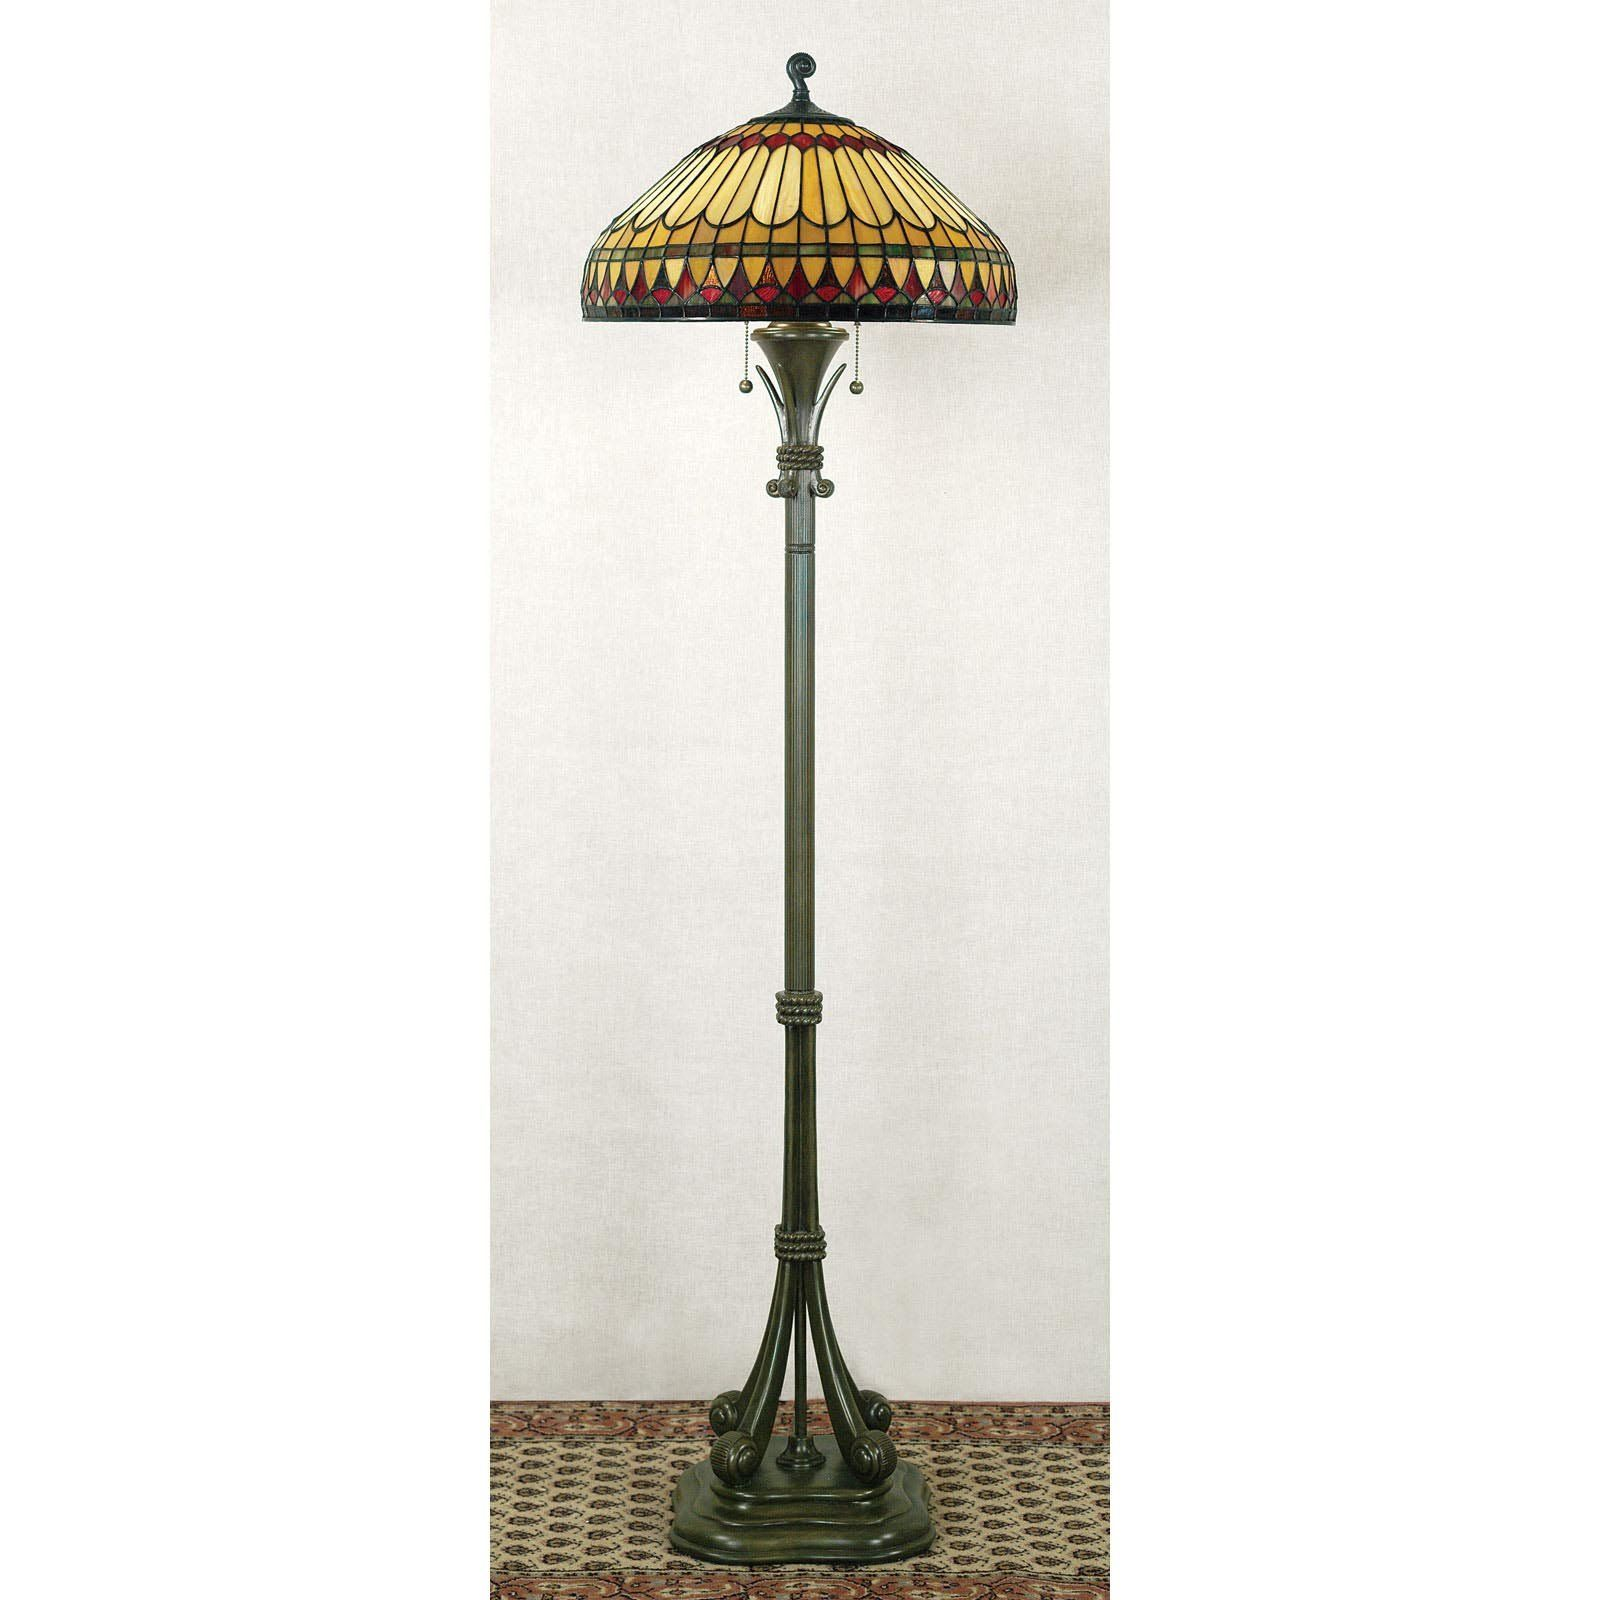 Tiffany Lamps For Sale Tiffany Floor Lamps Clearance Sale